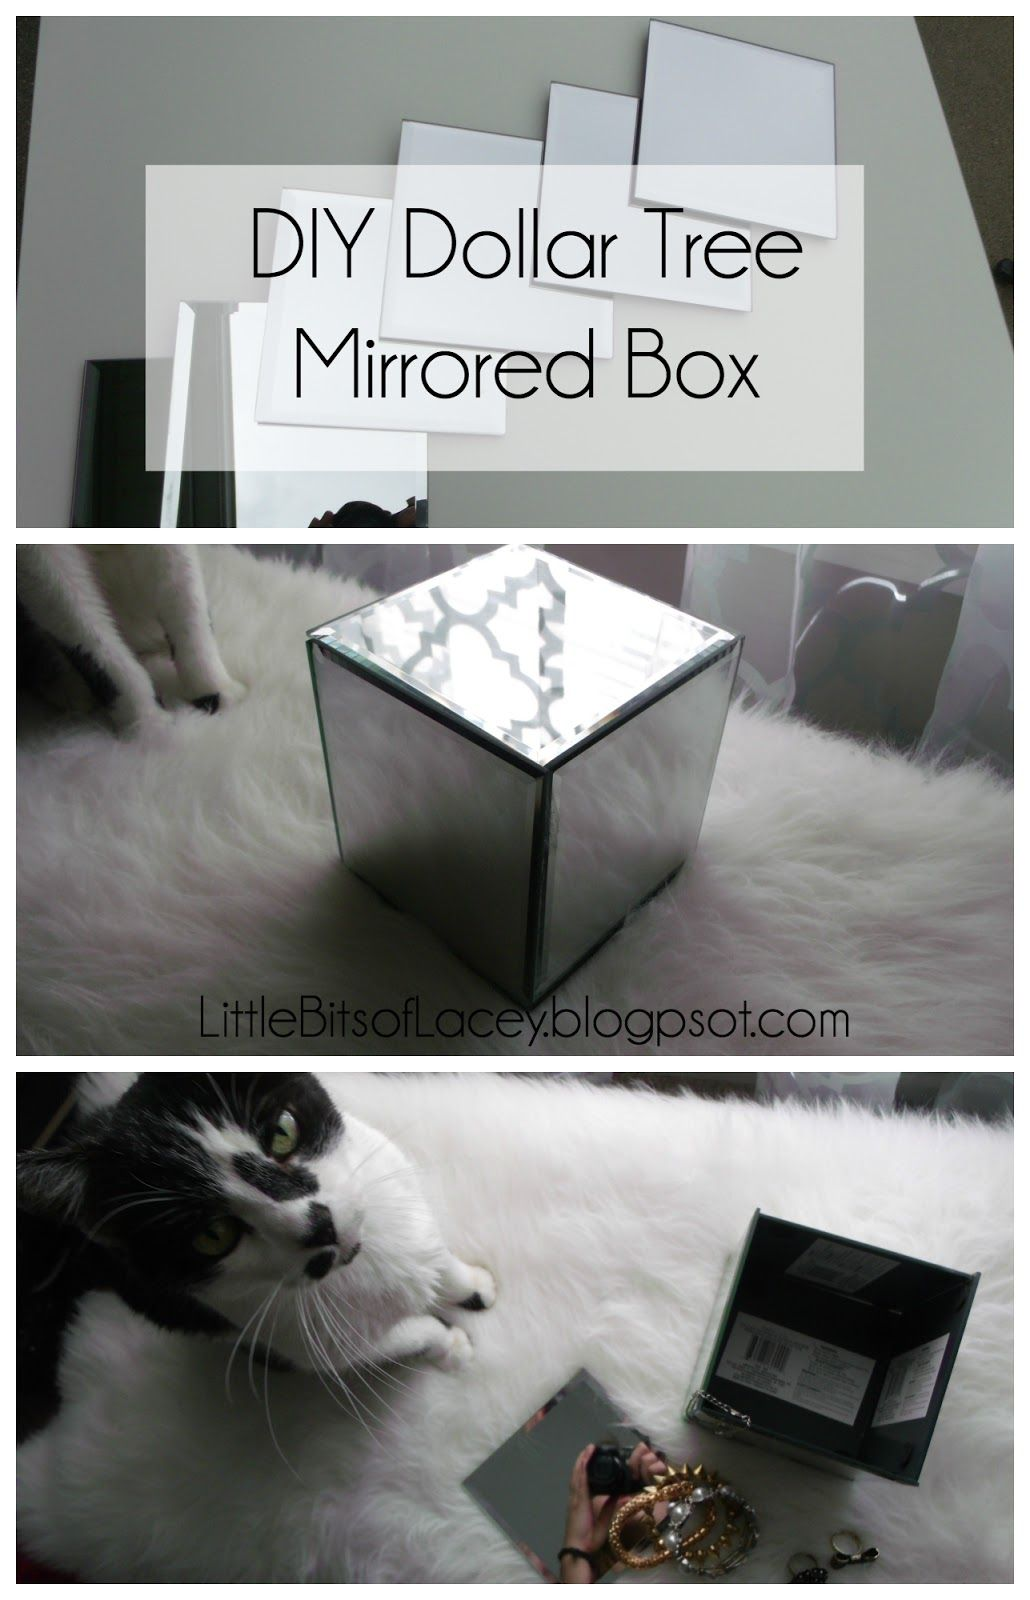 Diy Dollar Tree Mirrored Box Little Bits Of Lacey Share Your